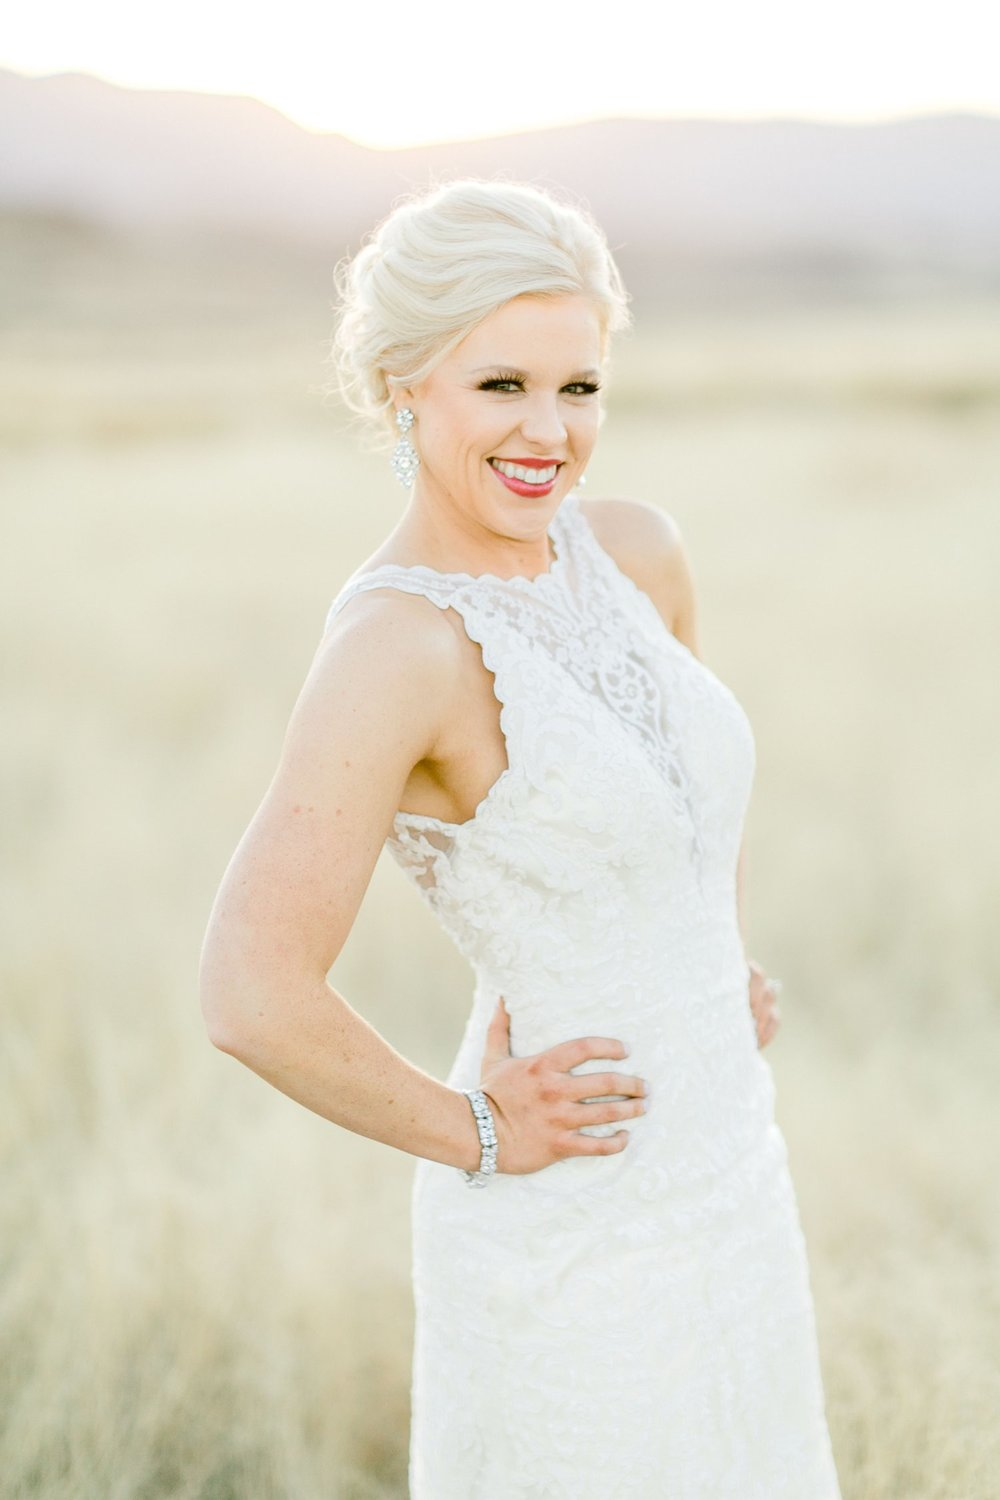 Jenna-evans-bridals-balmorhea-texas-fort-davis-wedding-photographer-lubbock-photographer__0069.jpg